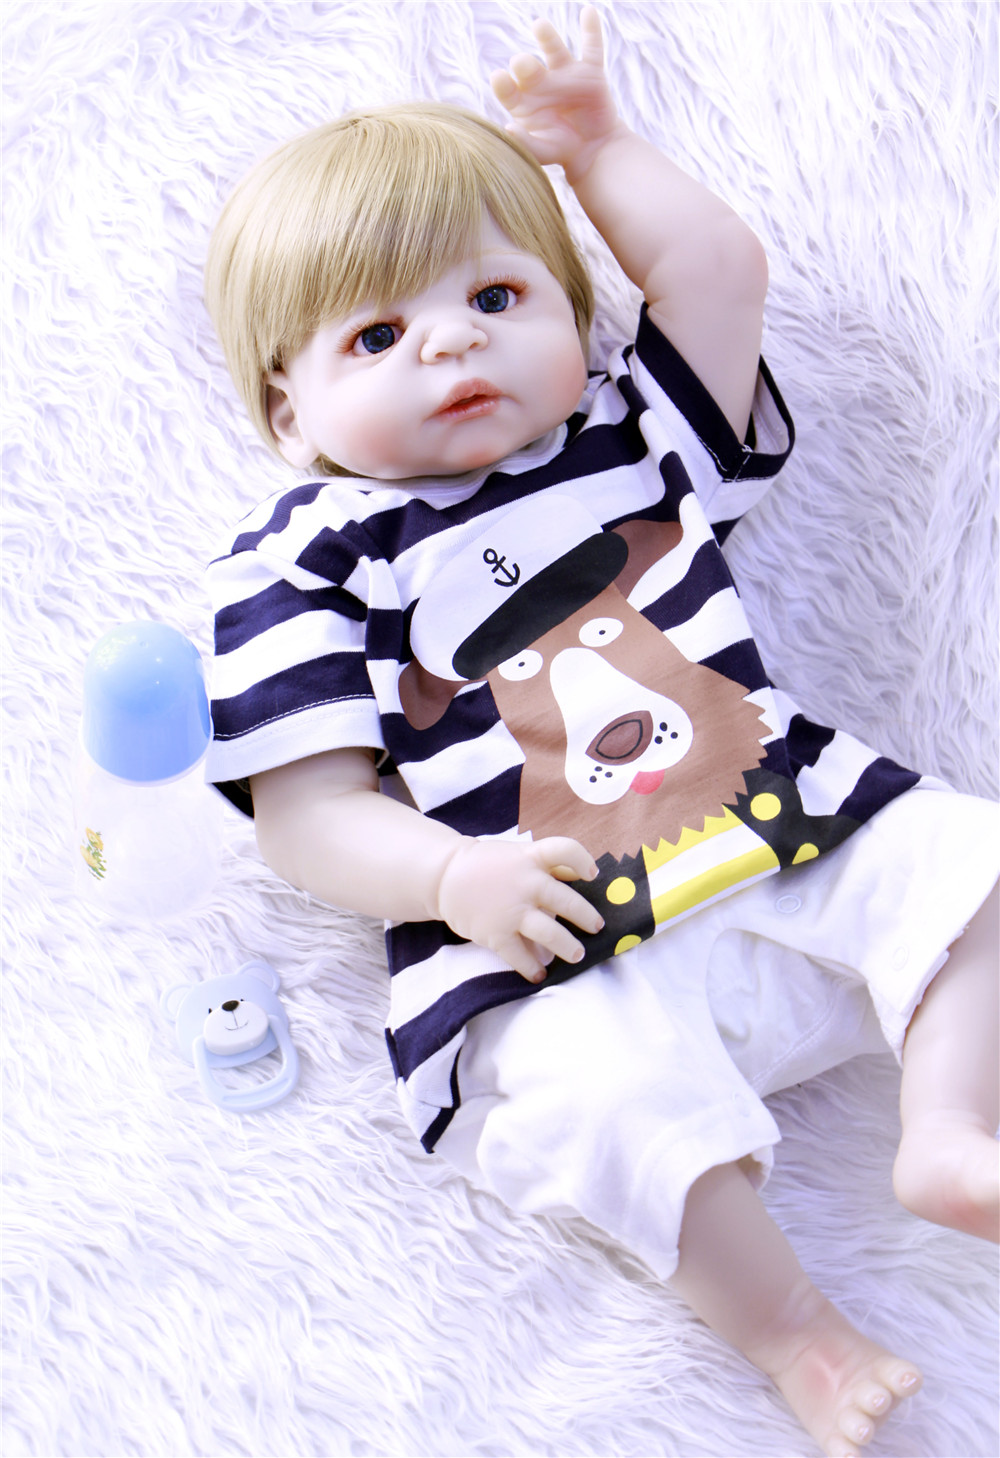 57cm Realistic Full Silicone doll reborn baby For Sale newborn boy girl baby alive dolls for Kids  Xmas Gifts bebe dolls menino57cm Realistic Full Silicone doll reborn baby For Sale newborn boy girl baby alive dolls for Kids  Xmas Gifts bebe dolls menino